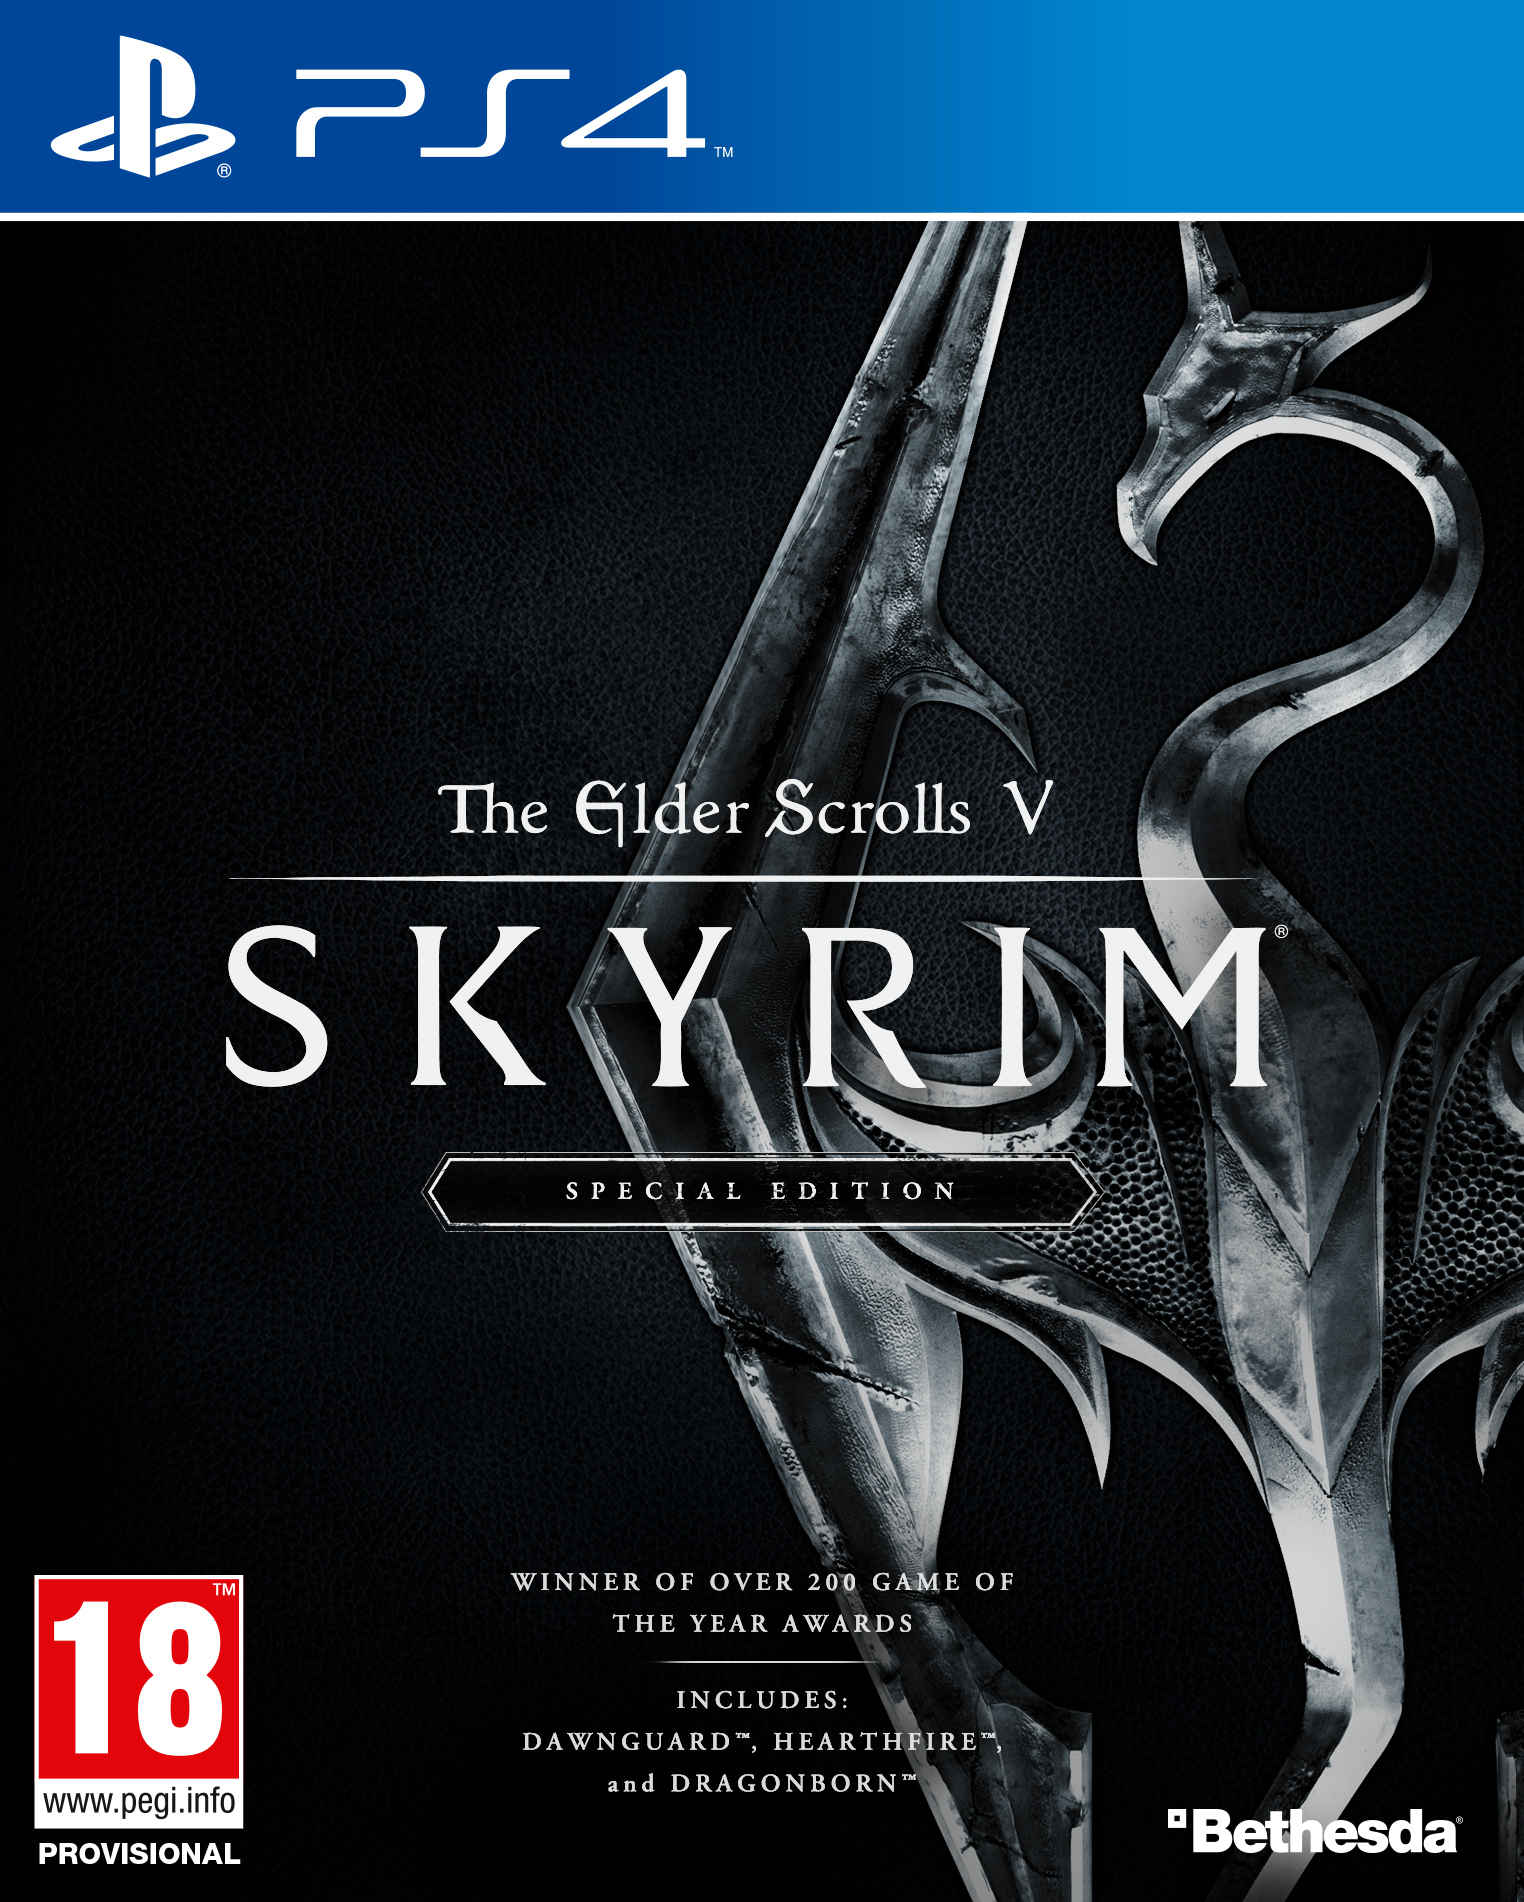 The Elder Scrolls V: Skyrim – Special Edition